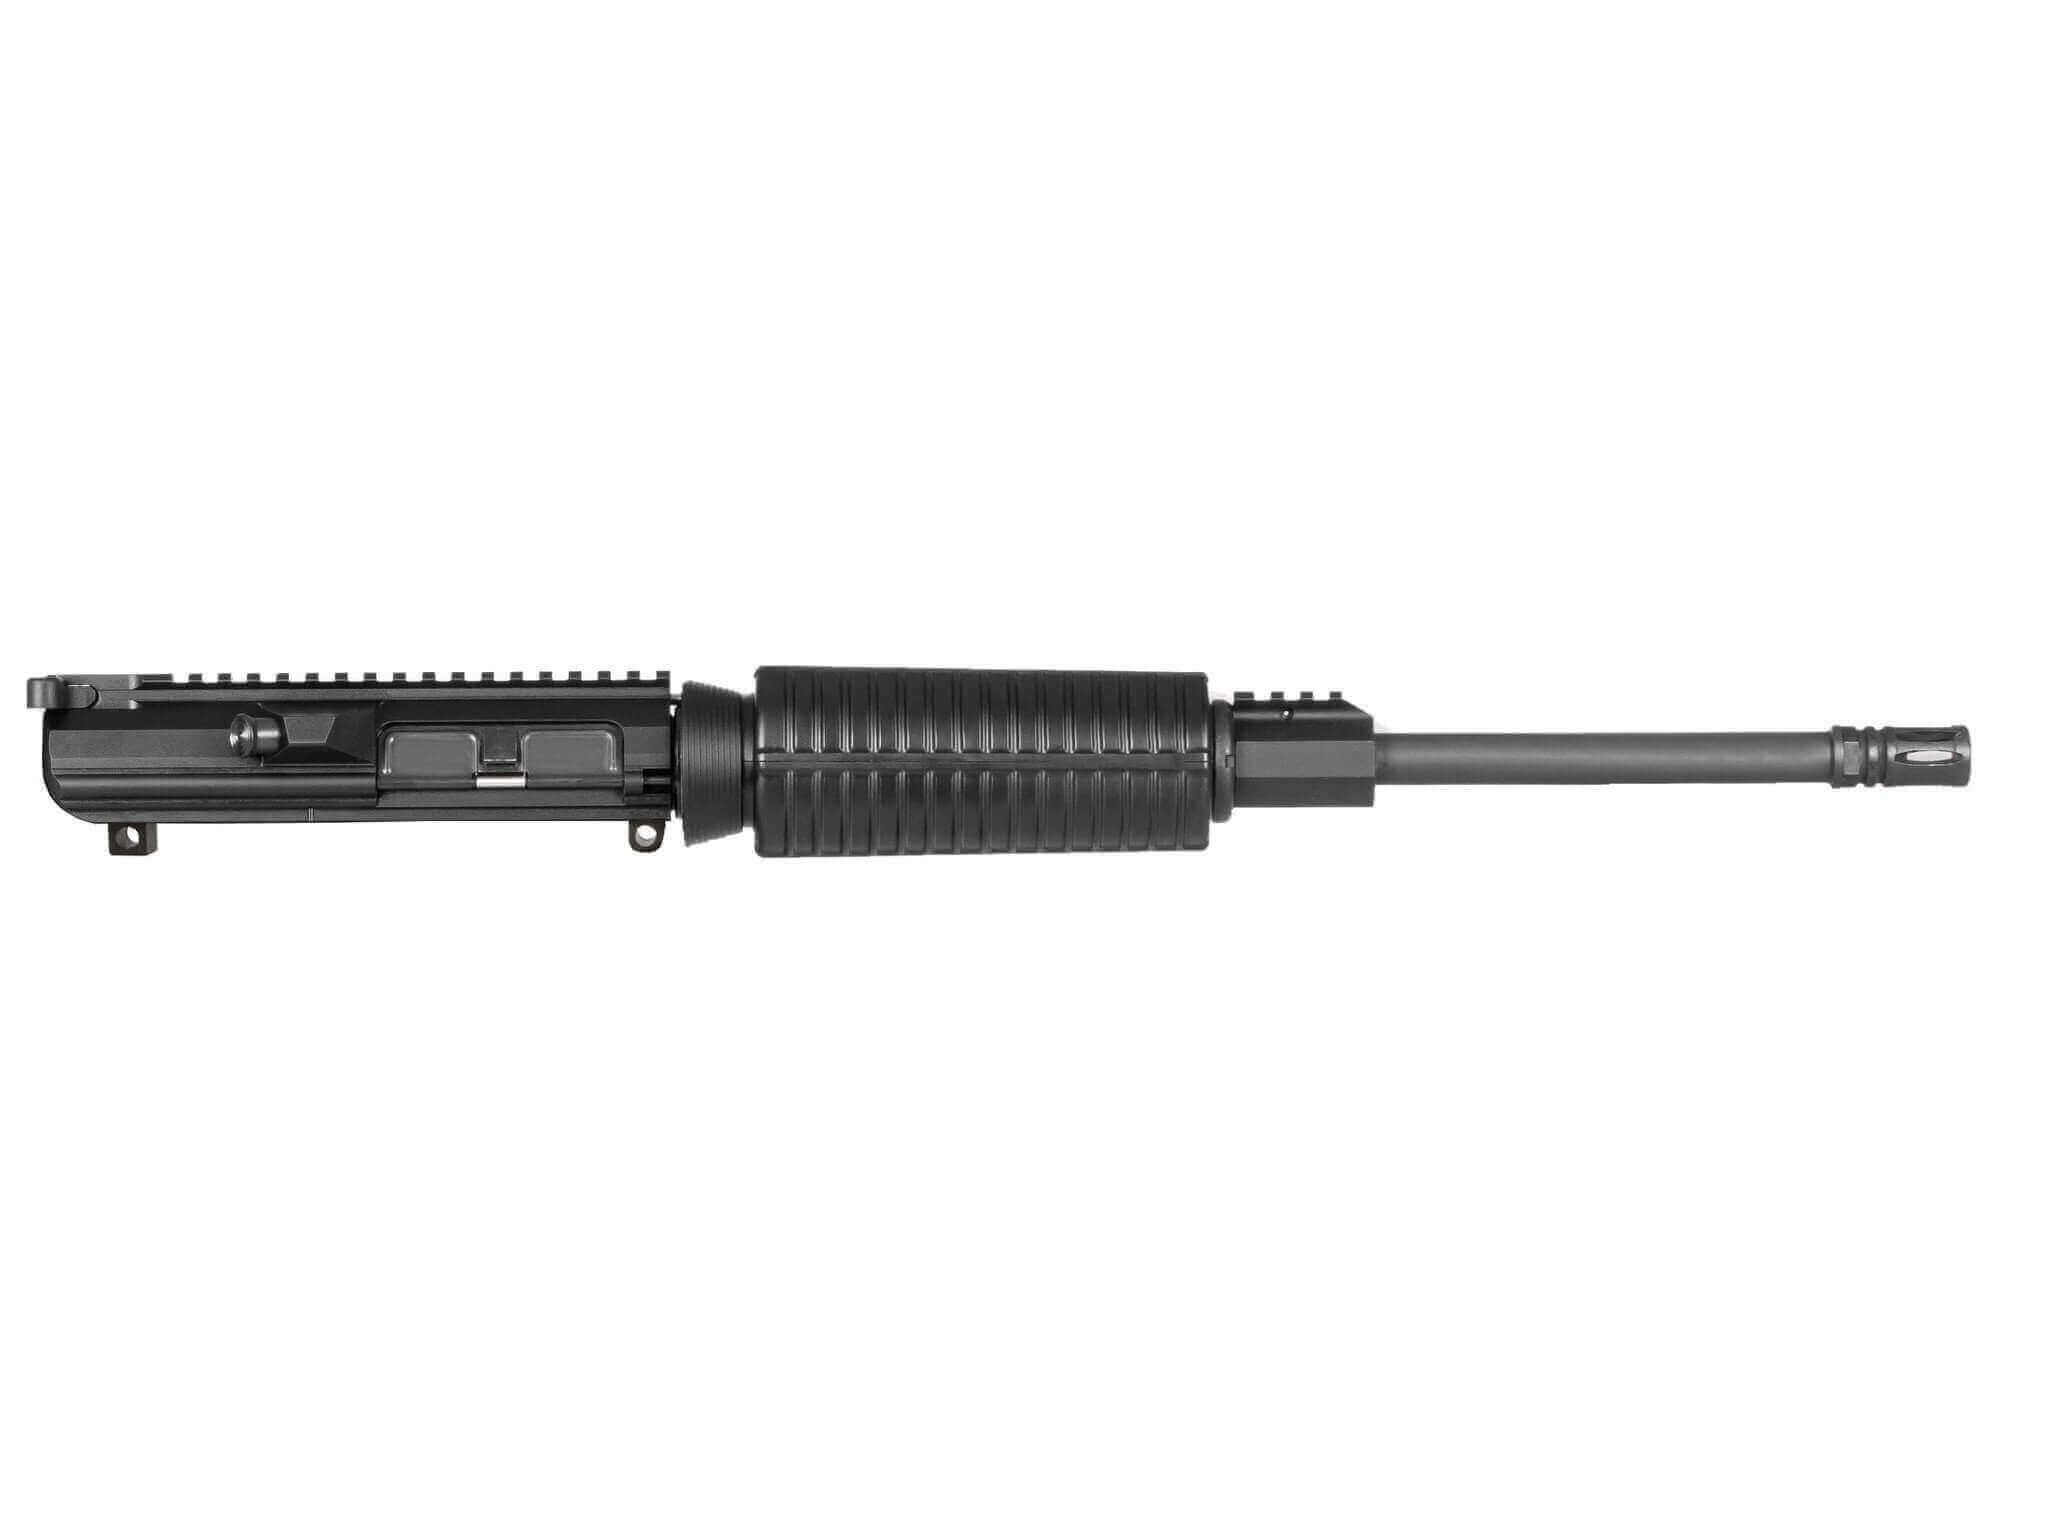 DPMS Oracle LR-308 Complete Upper Receiver Assembly - 308 Win - 16